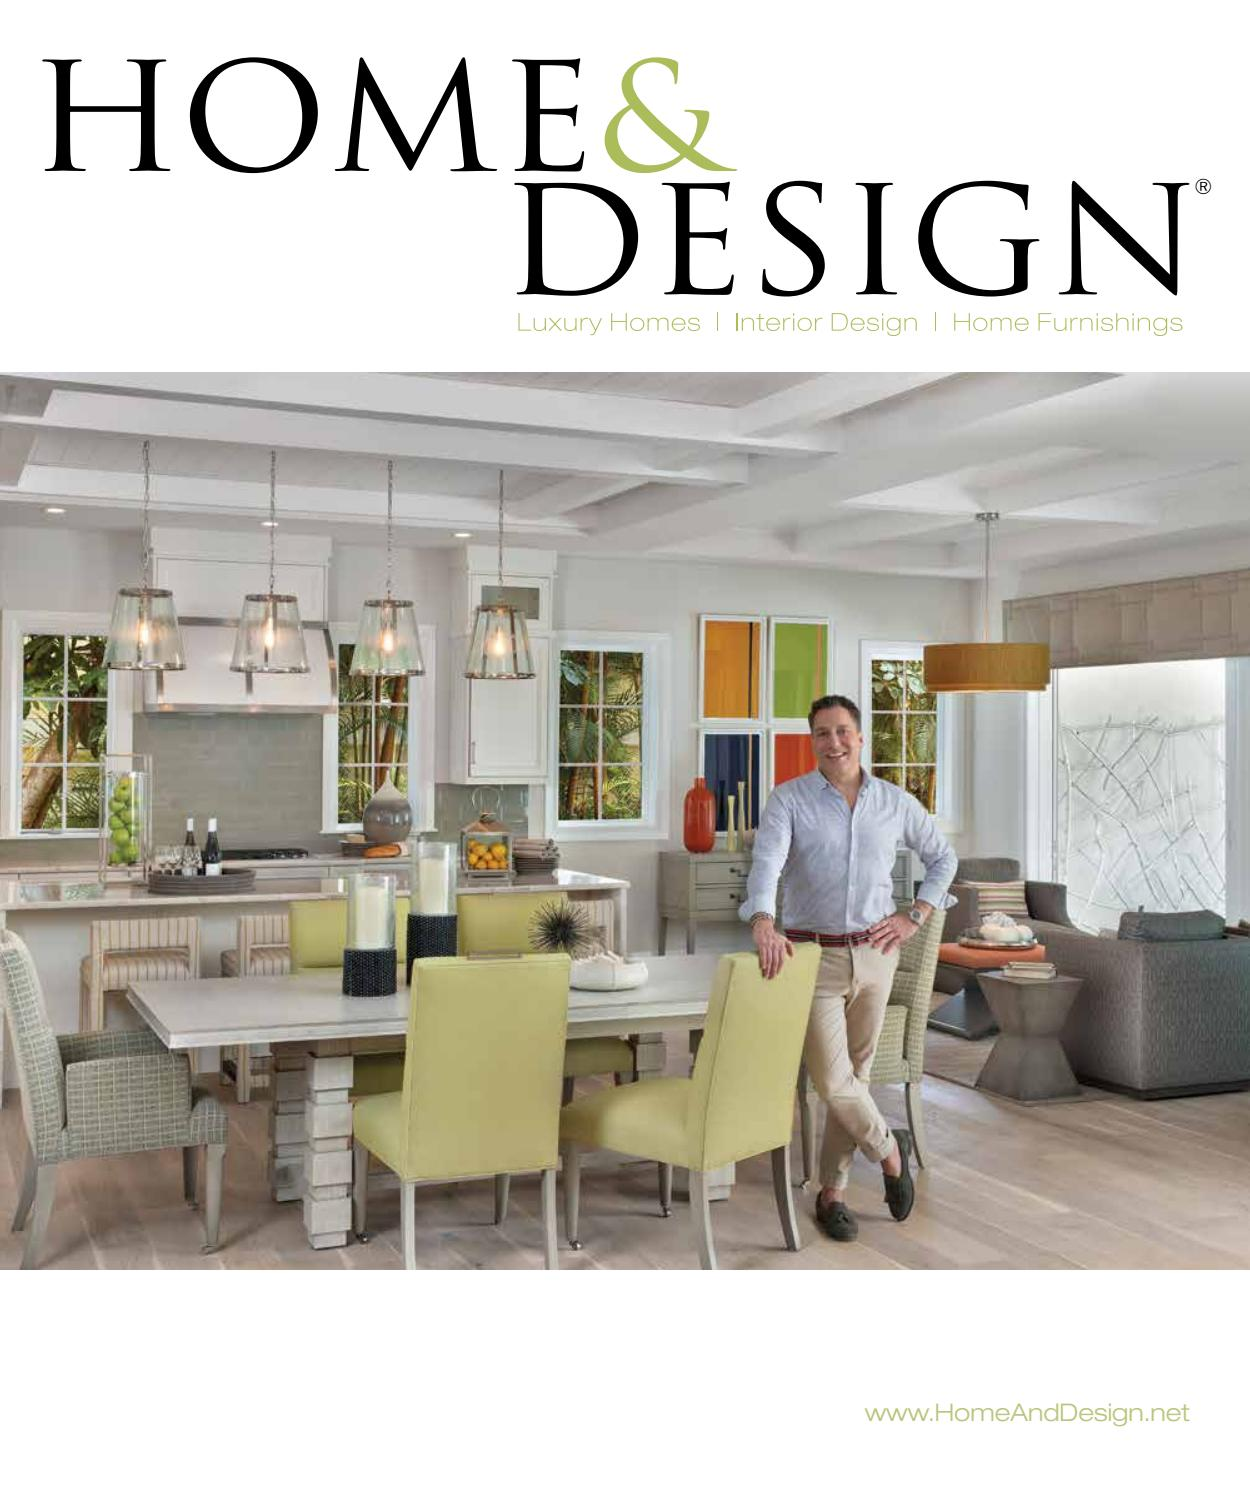 Home design magazine 2016 southwest florida edition by for House designs magazine